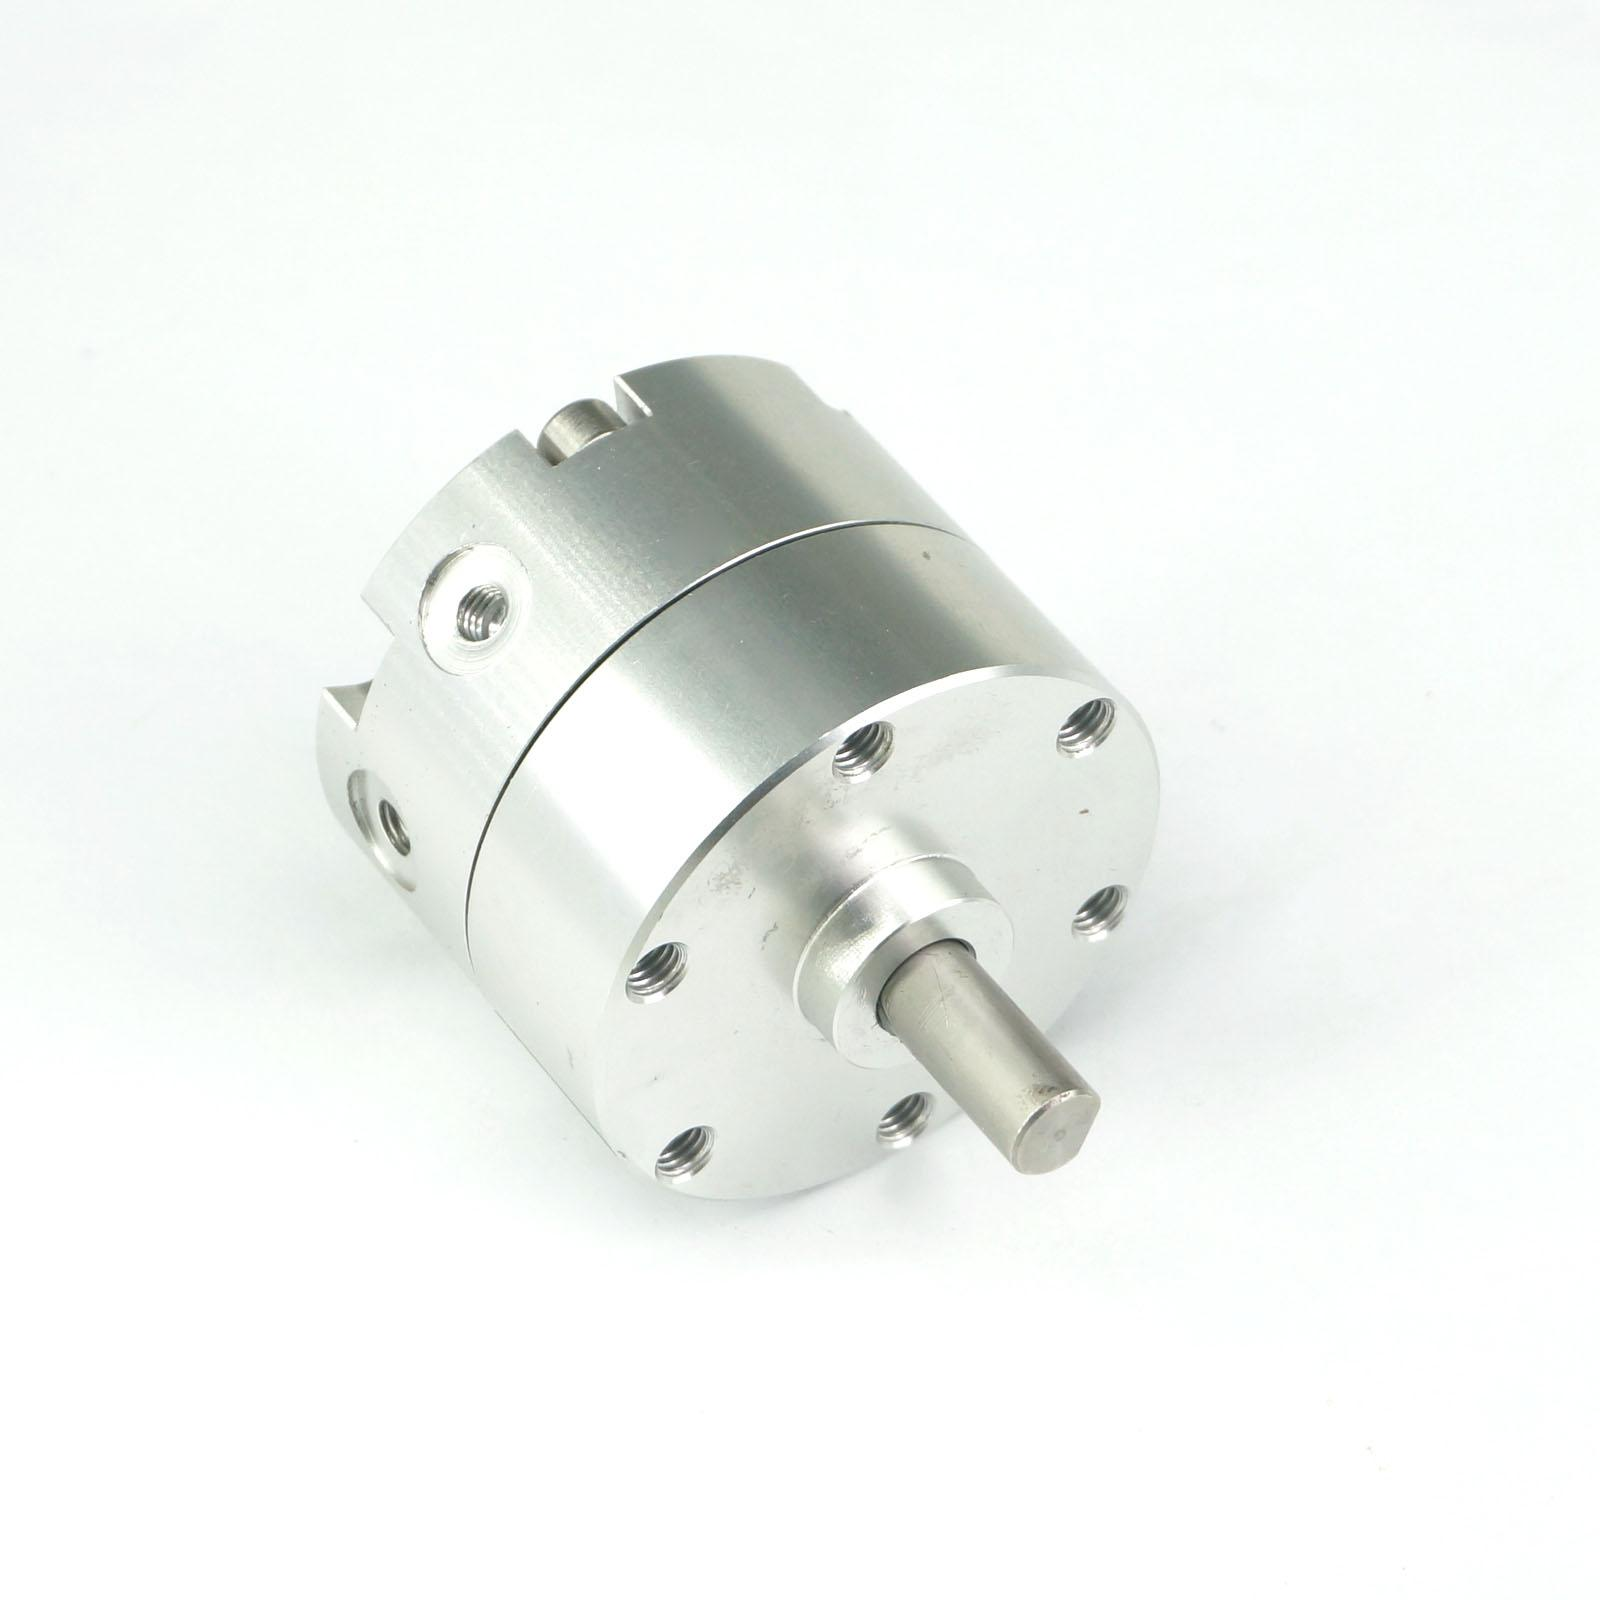 CRB2BW30-90S Rotary Cylinder Vane Double Shaft Size 30mm Rotating 90 Degree<br>